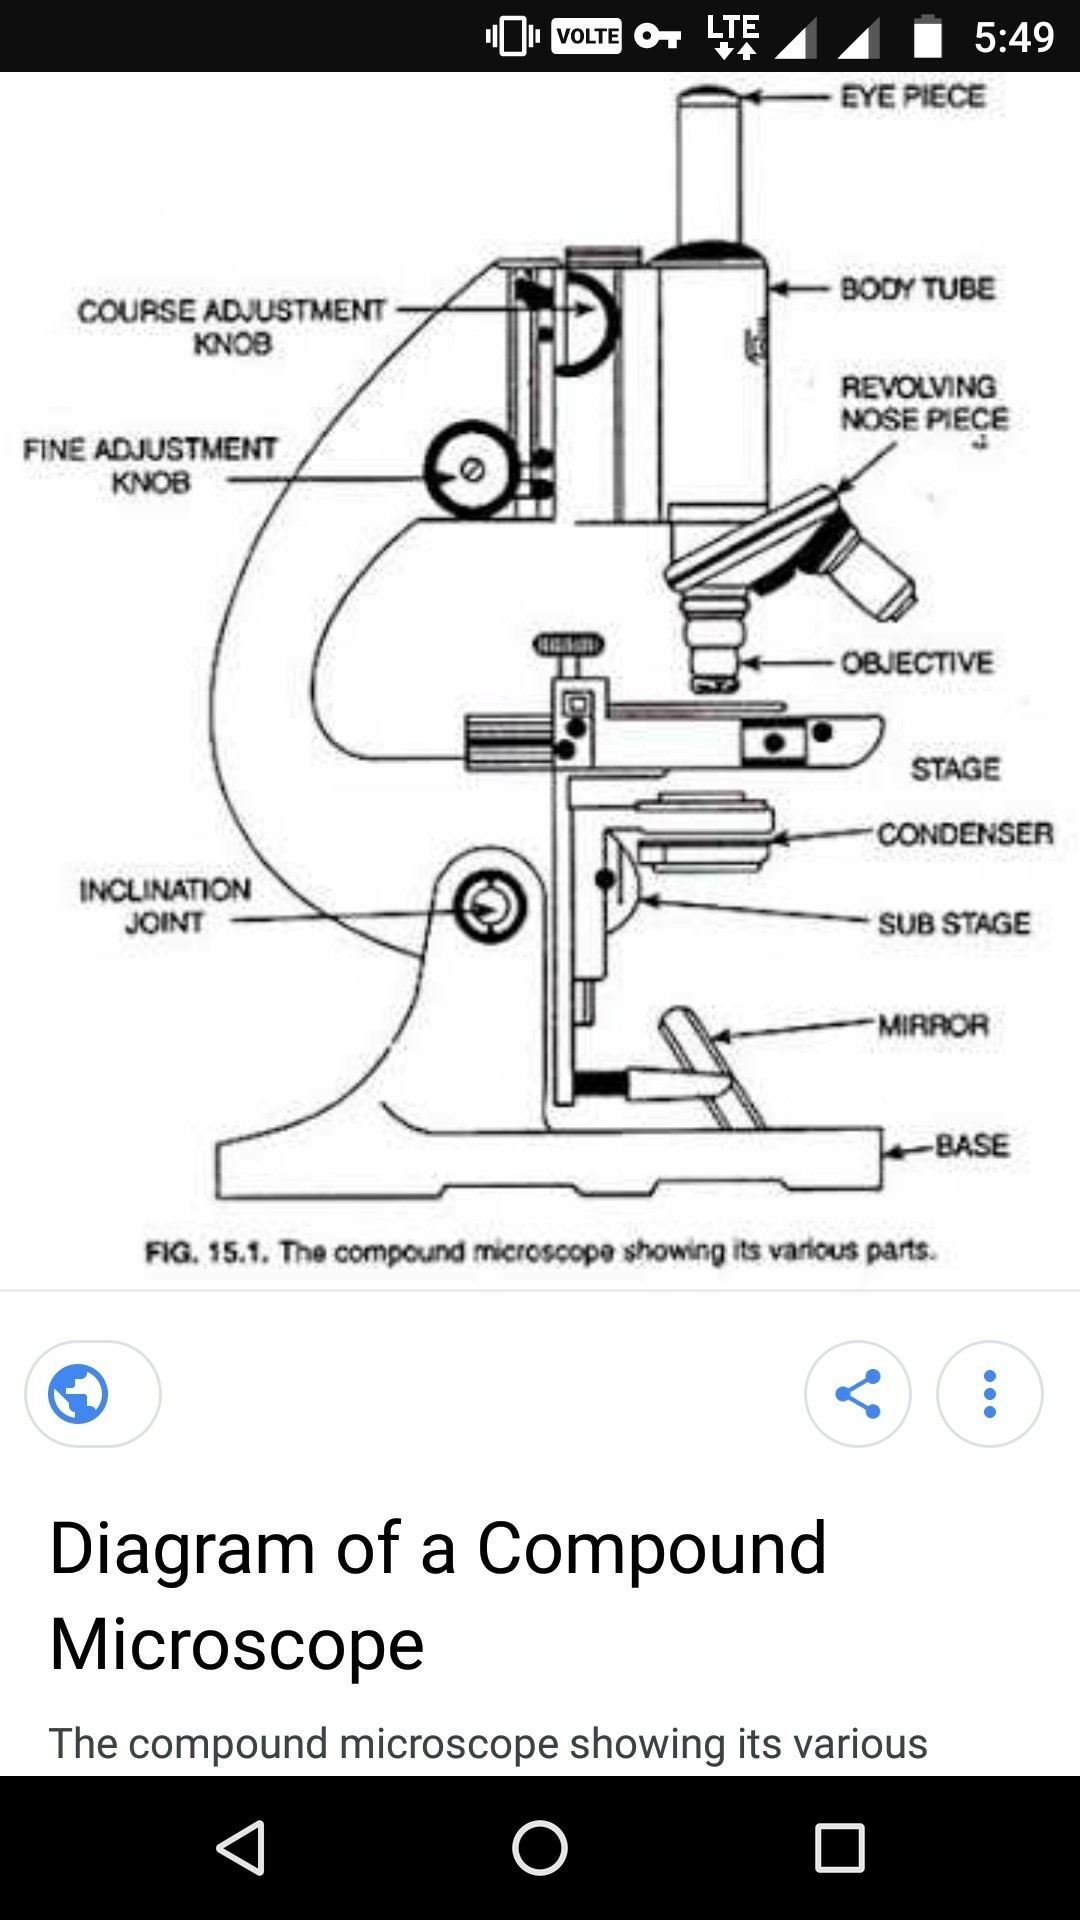 Daigram of compound microscope brainly download jpg ccuart Gallery